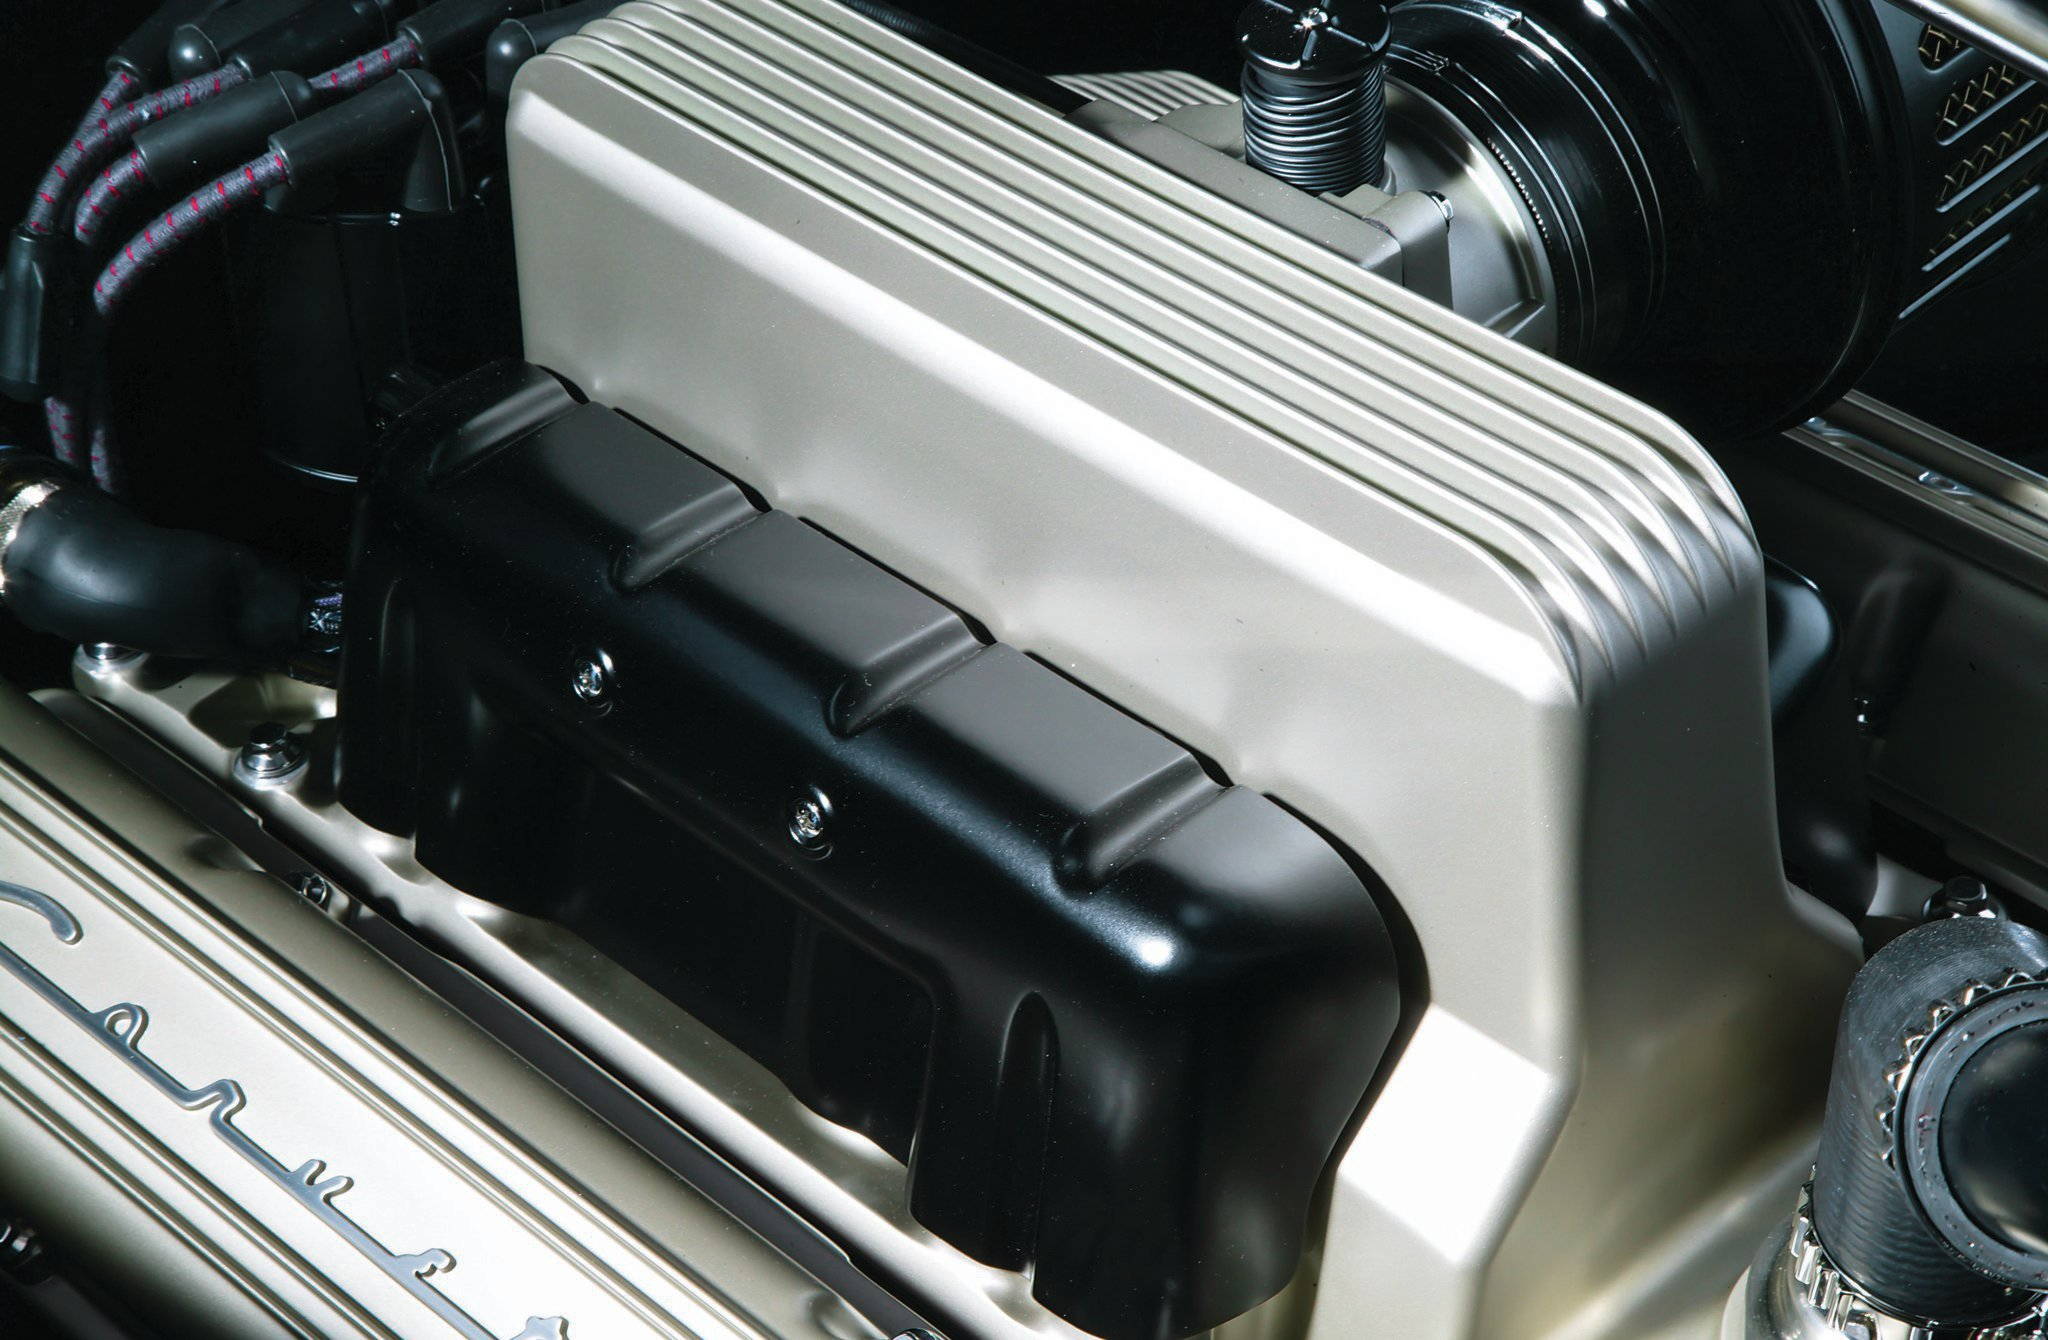 The 383-inch stroker SBC was built by Ben Adams of Adams Automotive that utilizes an MSD ignition, a Billet Specialties Tru Trac serpentine belt system, and a billet Powermaster alternator. The mechanical fuel injection made famous on Corvettes and other GM cars was the old Rochester unit. This may look like a first-generation FI but in fact it's a modern Ram Jet EFI made to look old.